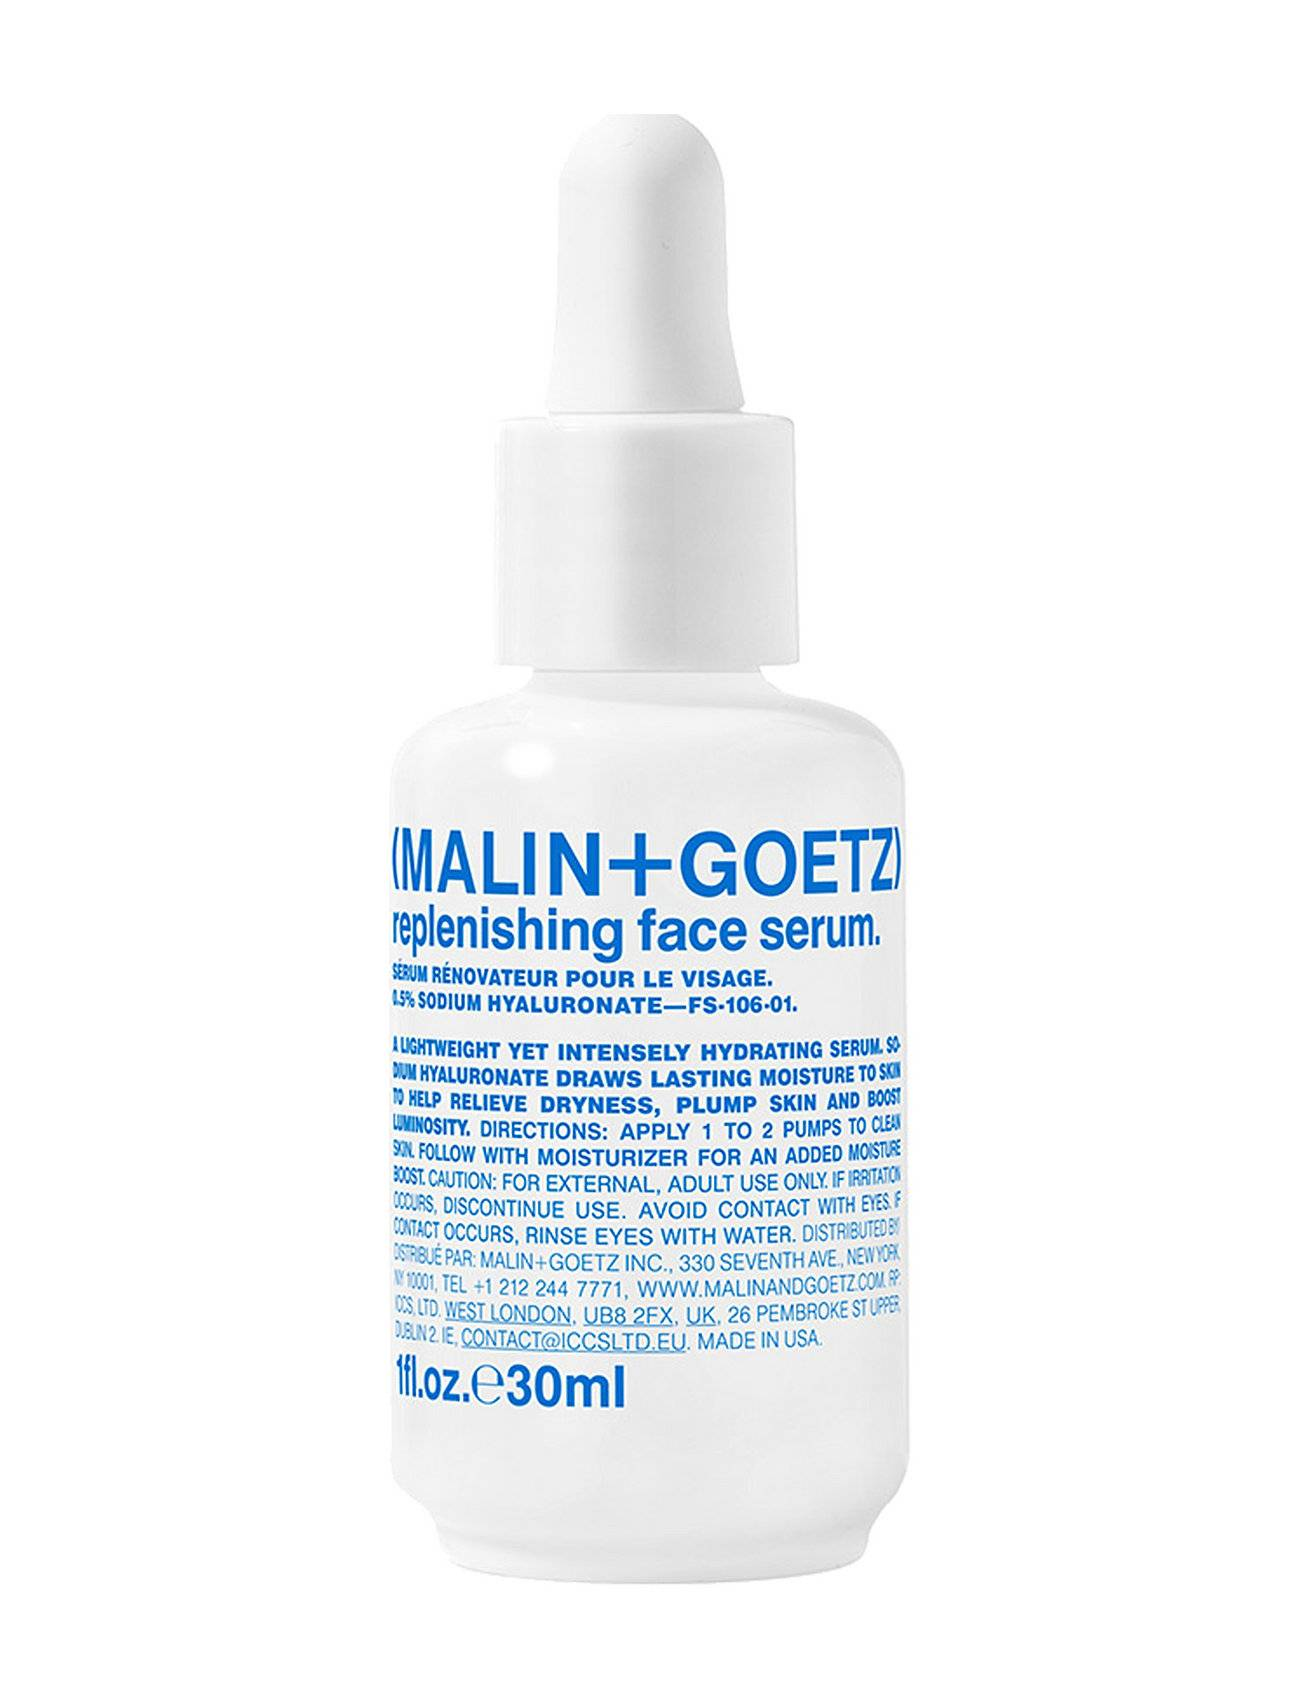 Malin+Goetz Replenishing Face Serum Seerumi Ihonhoito Nude Malin+Goetz